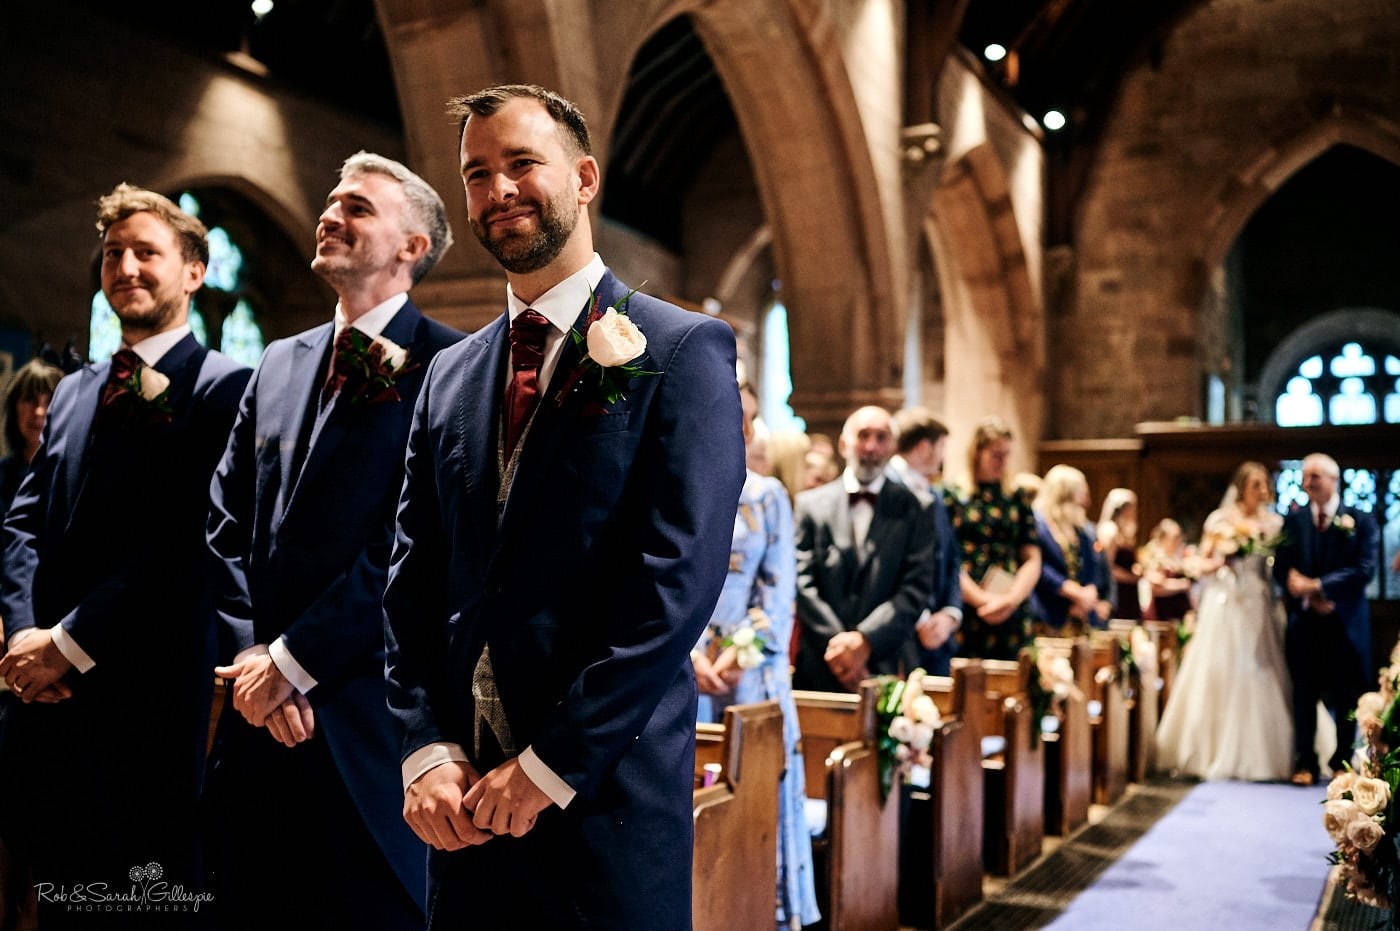 Groom waiting for bride at St Peter's church Pedmore wedding